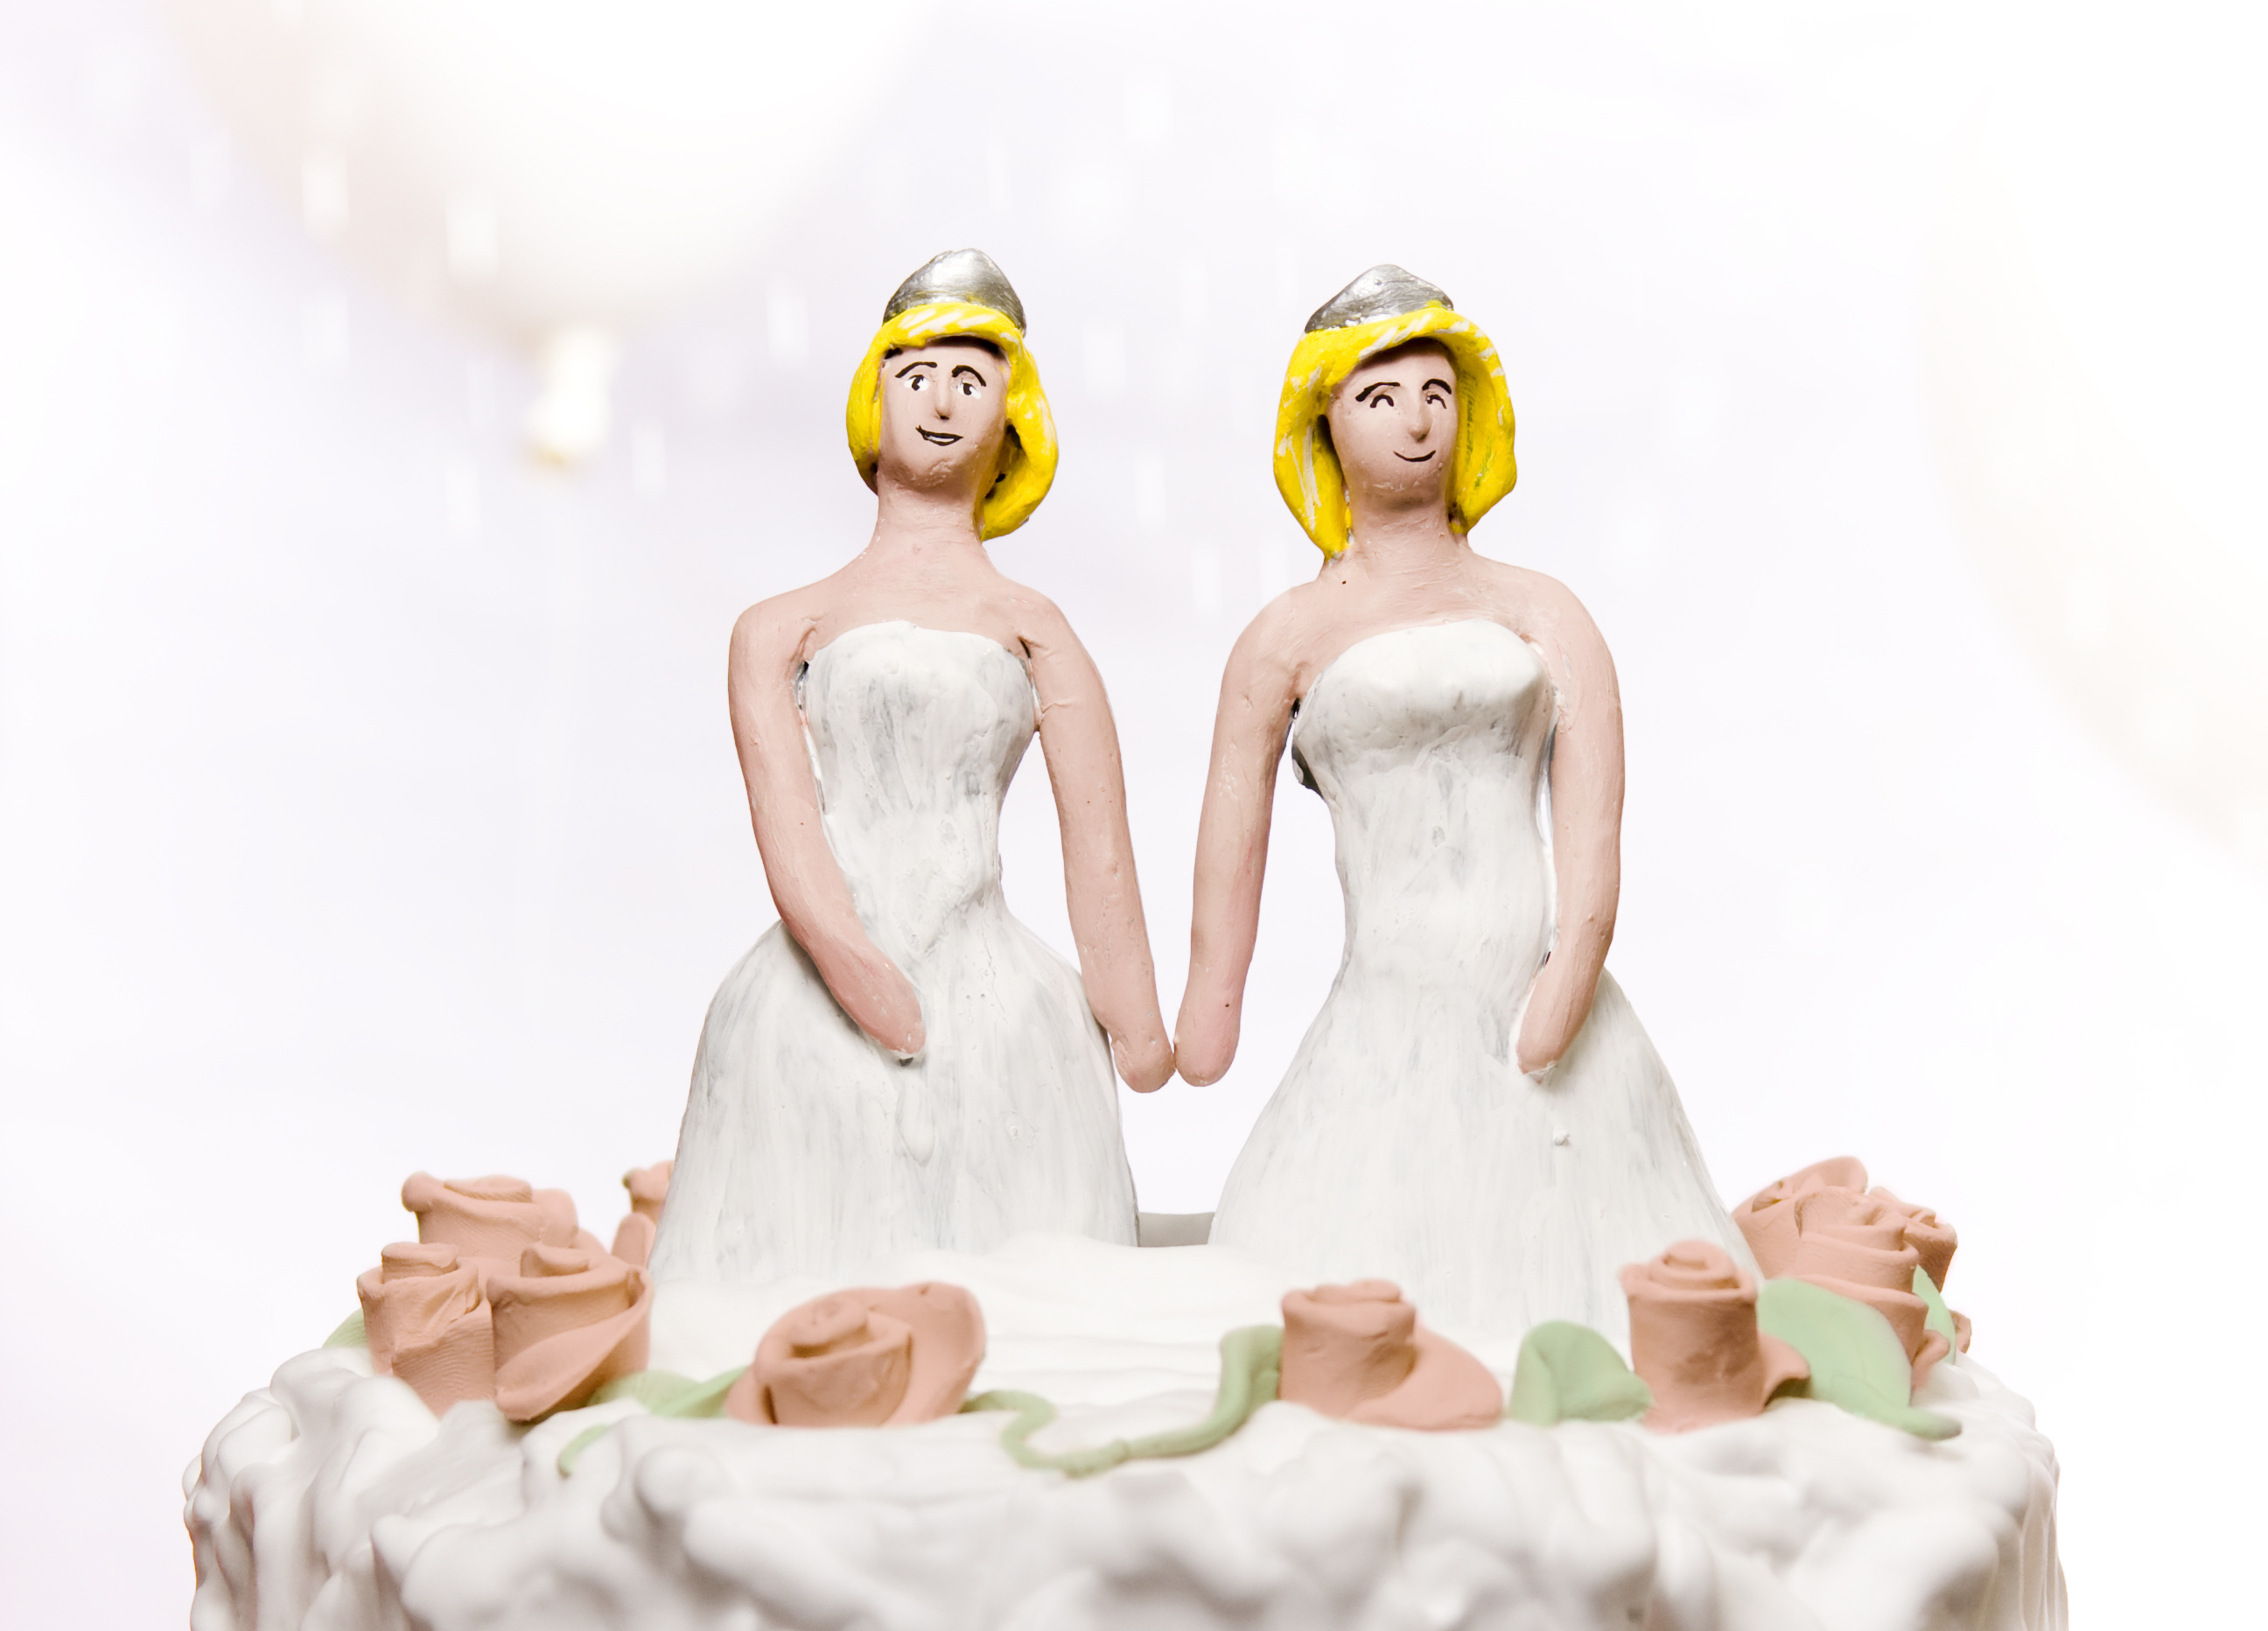 brides on wedding cake